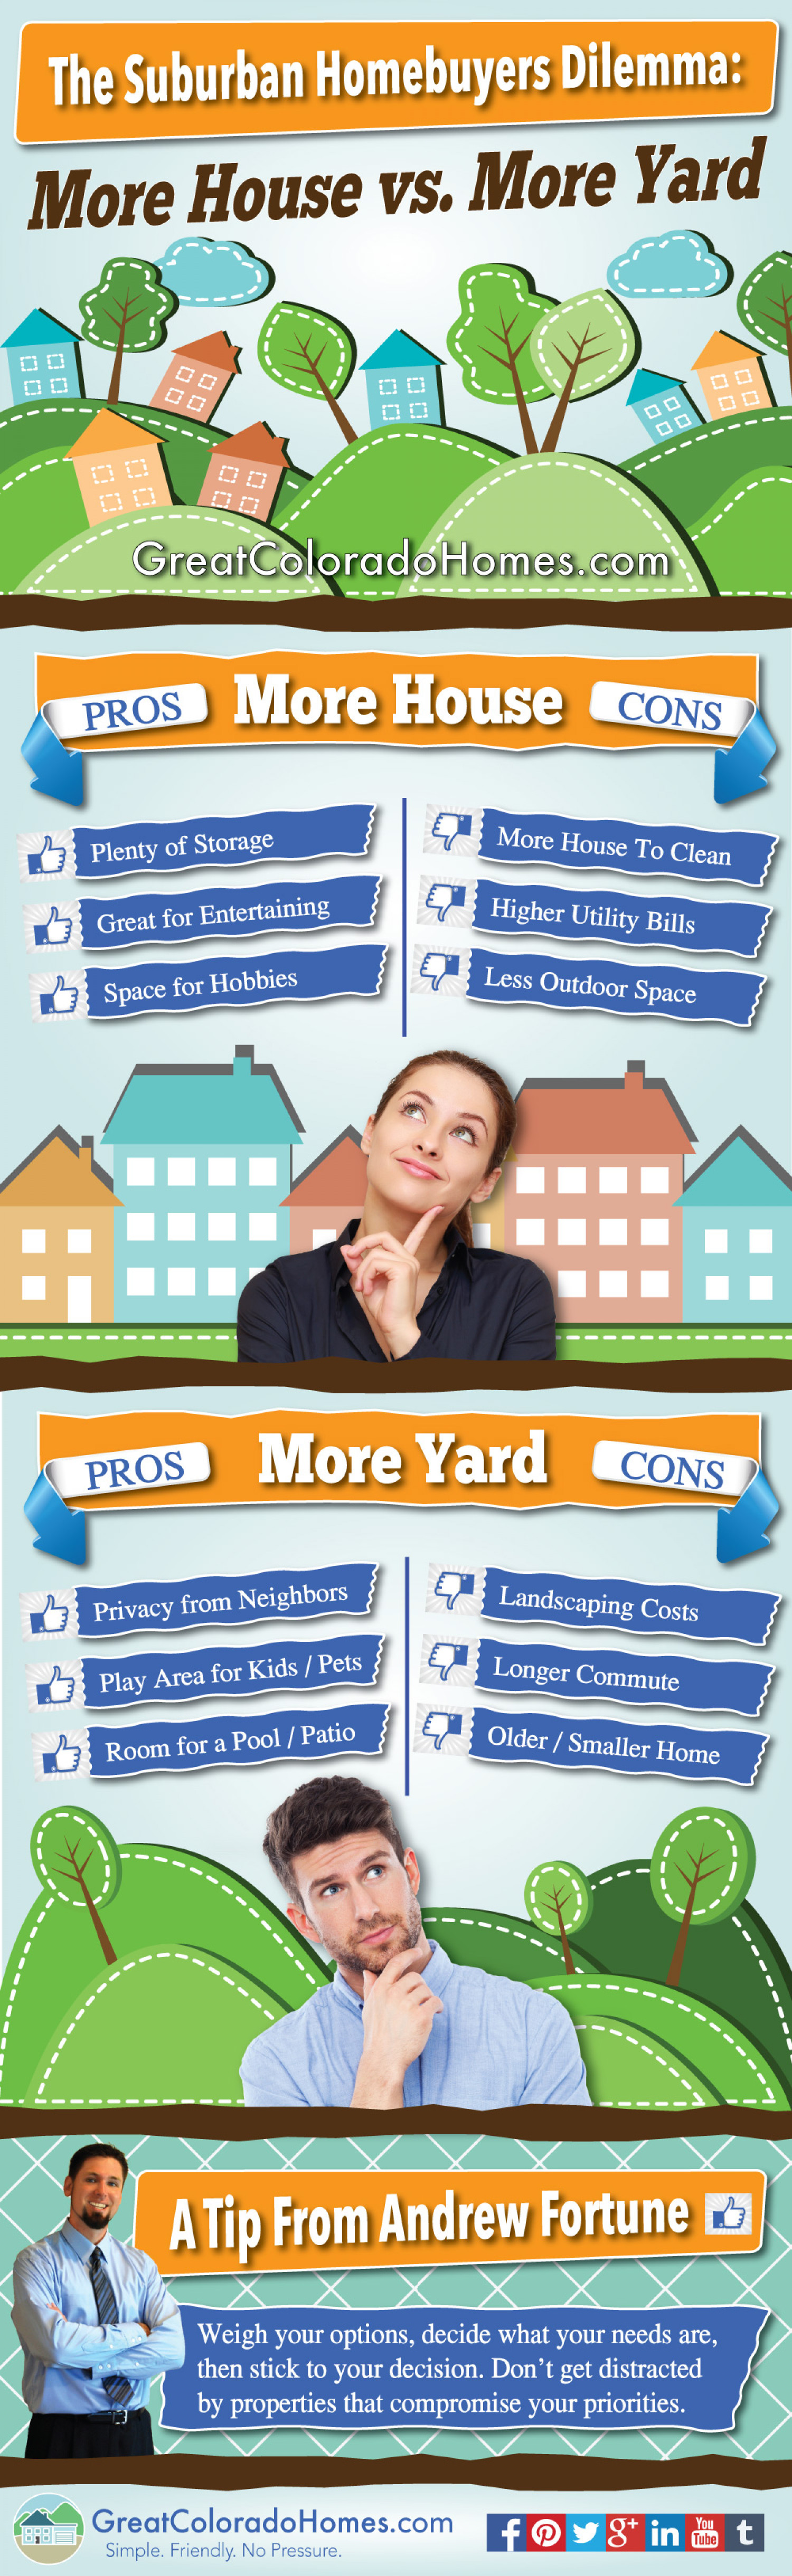 The Suburban Homebuyers Dilemma: More House Versus More Yard Infographic